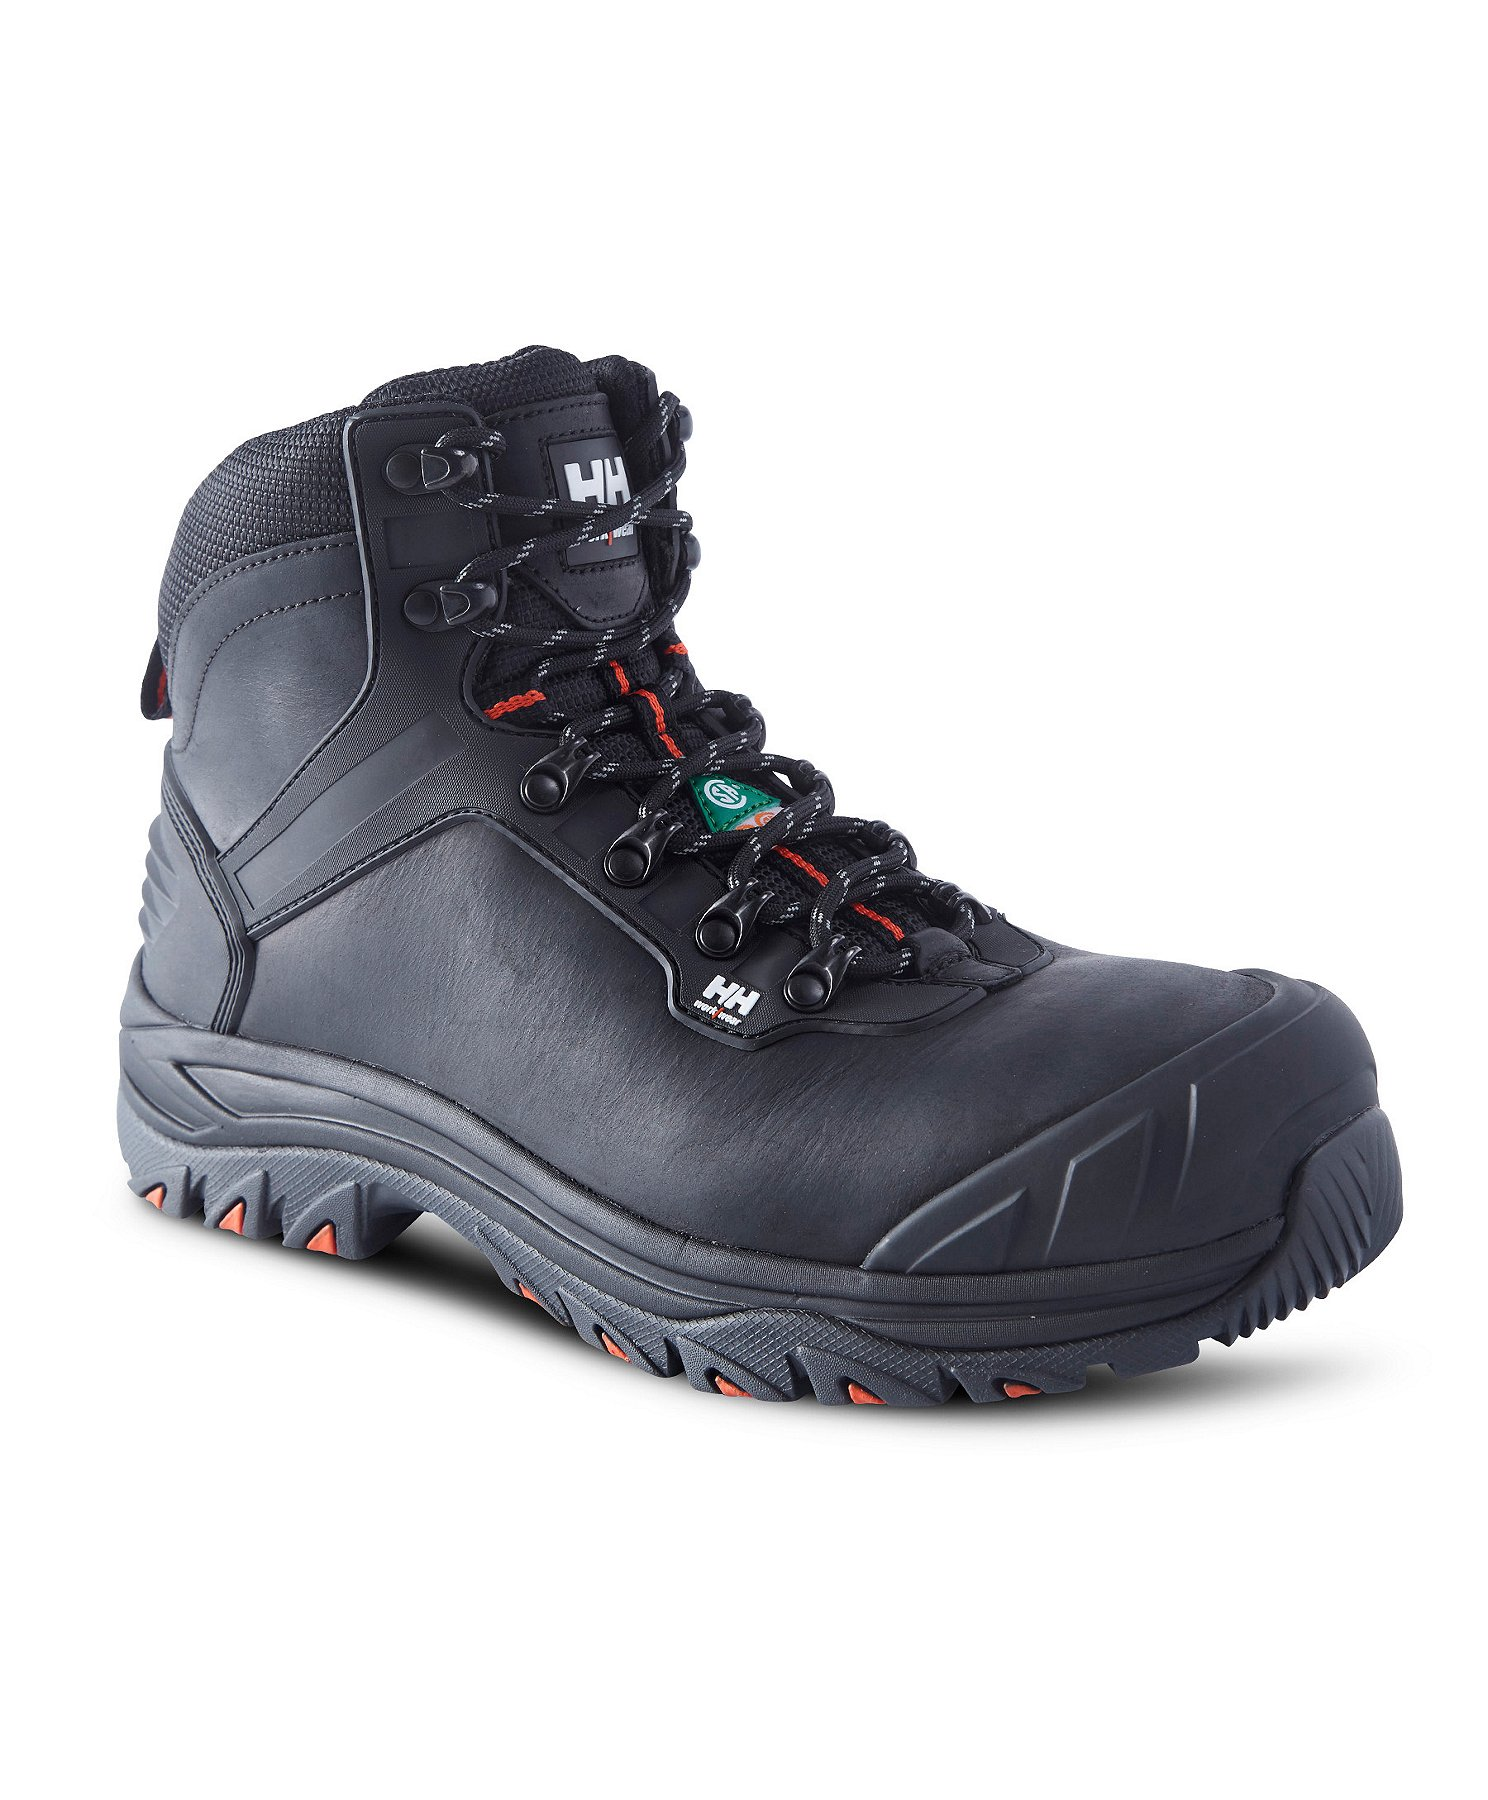 new arrival 5ed75 3e1be Men's Composite Toe Composite Plate Leather Work Boots